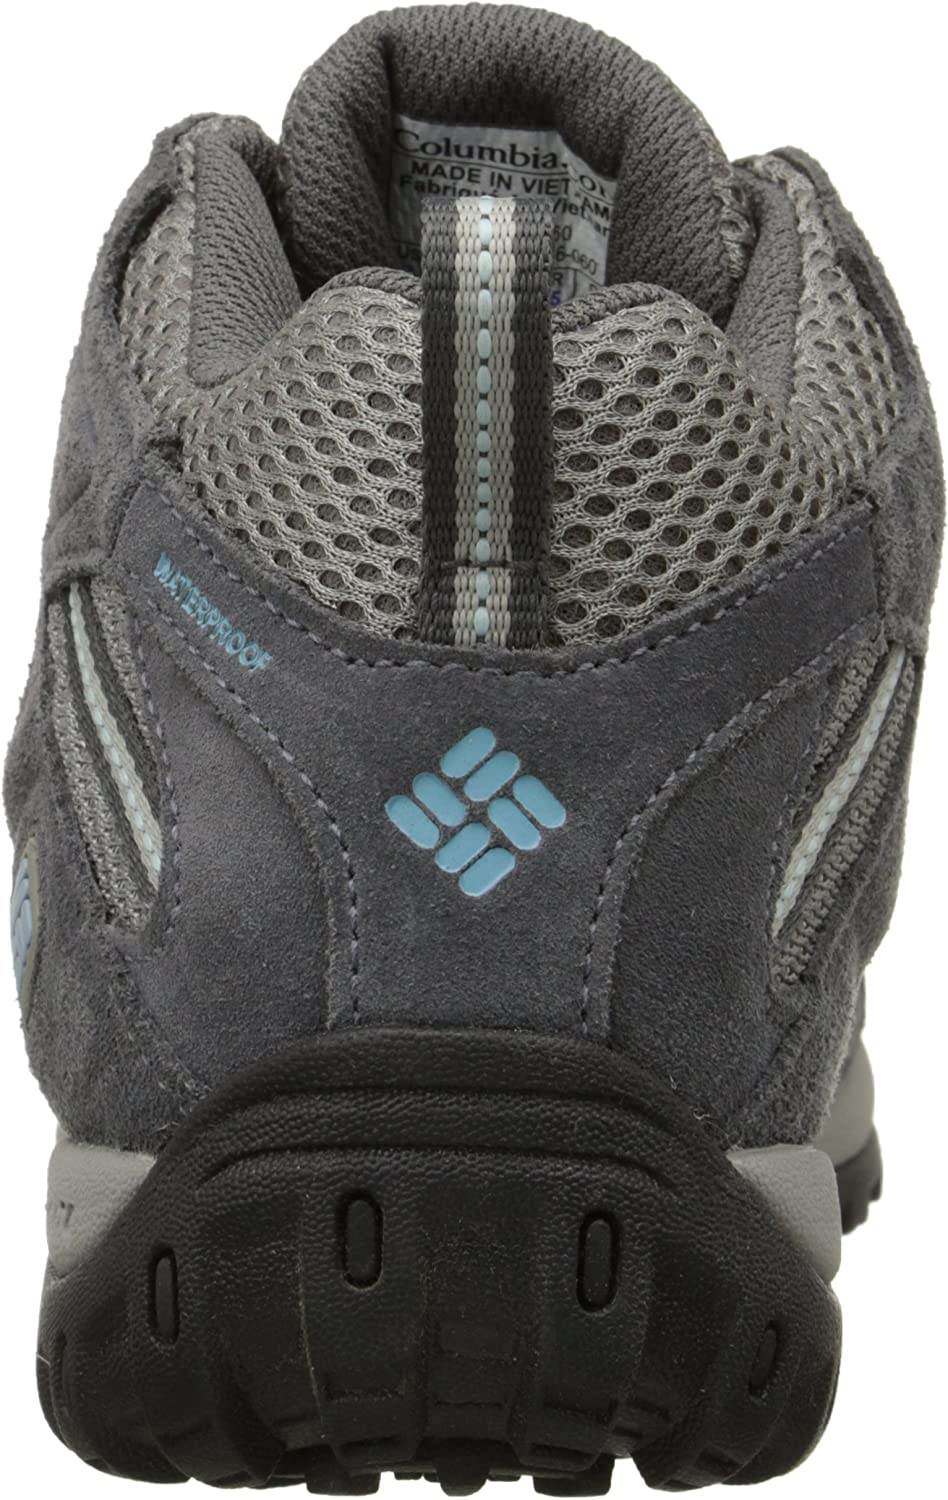 Columbia Women's Redmond Mid Waterproof Hiking Boot, Breathable, High-Traction Grip